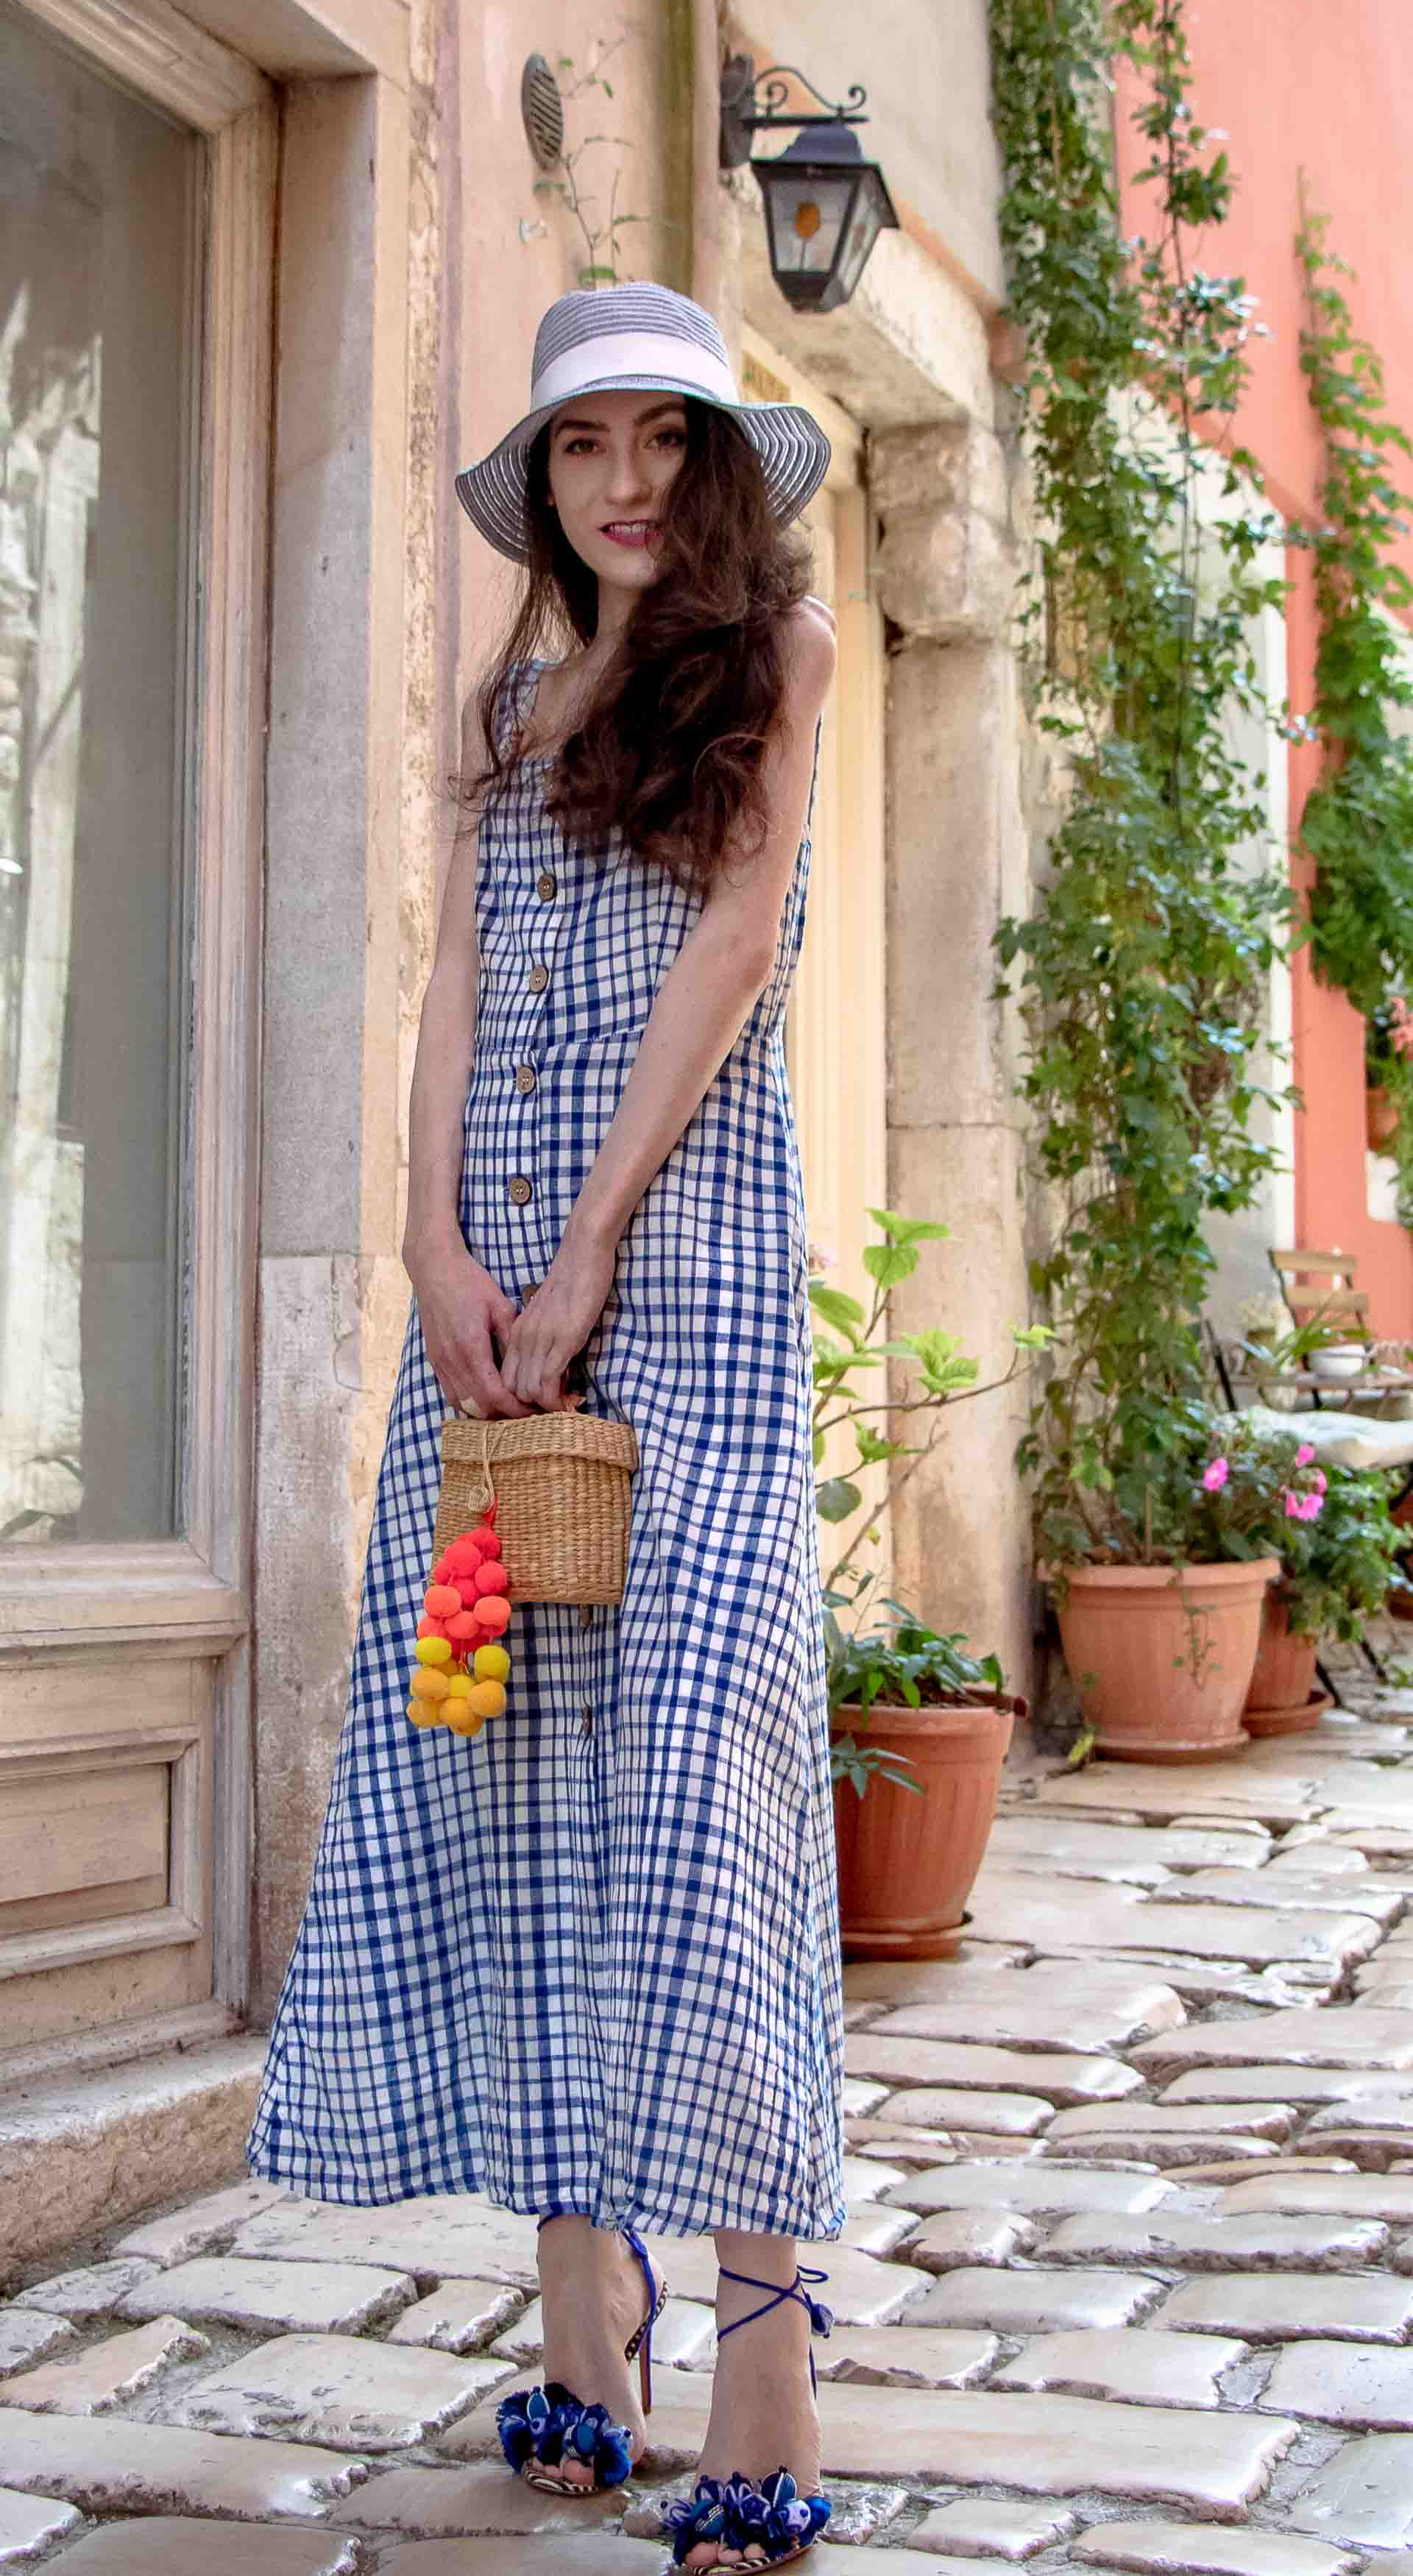 Fashion Blogger Veronika Lipar of Brunette from Wall Street wearing plaid Mango front buttoned cotton dress, Nannacay basket bag, blue straw hat, Aquazzura blue tropicana sandals, standing on the stone paved street in Rovinj Croatia